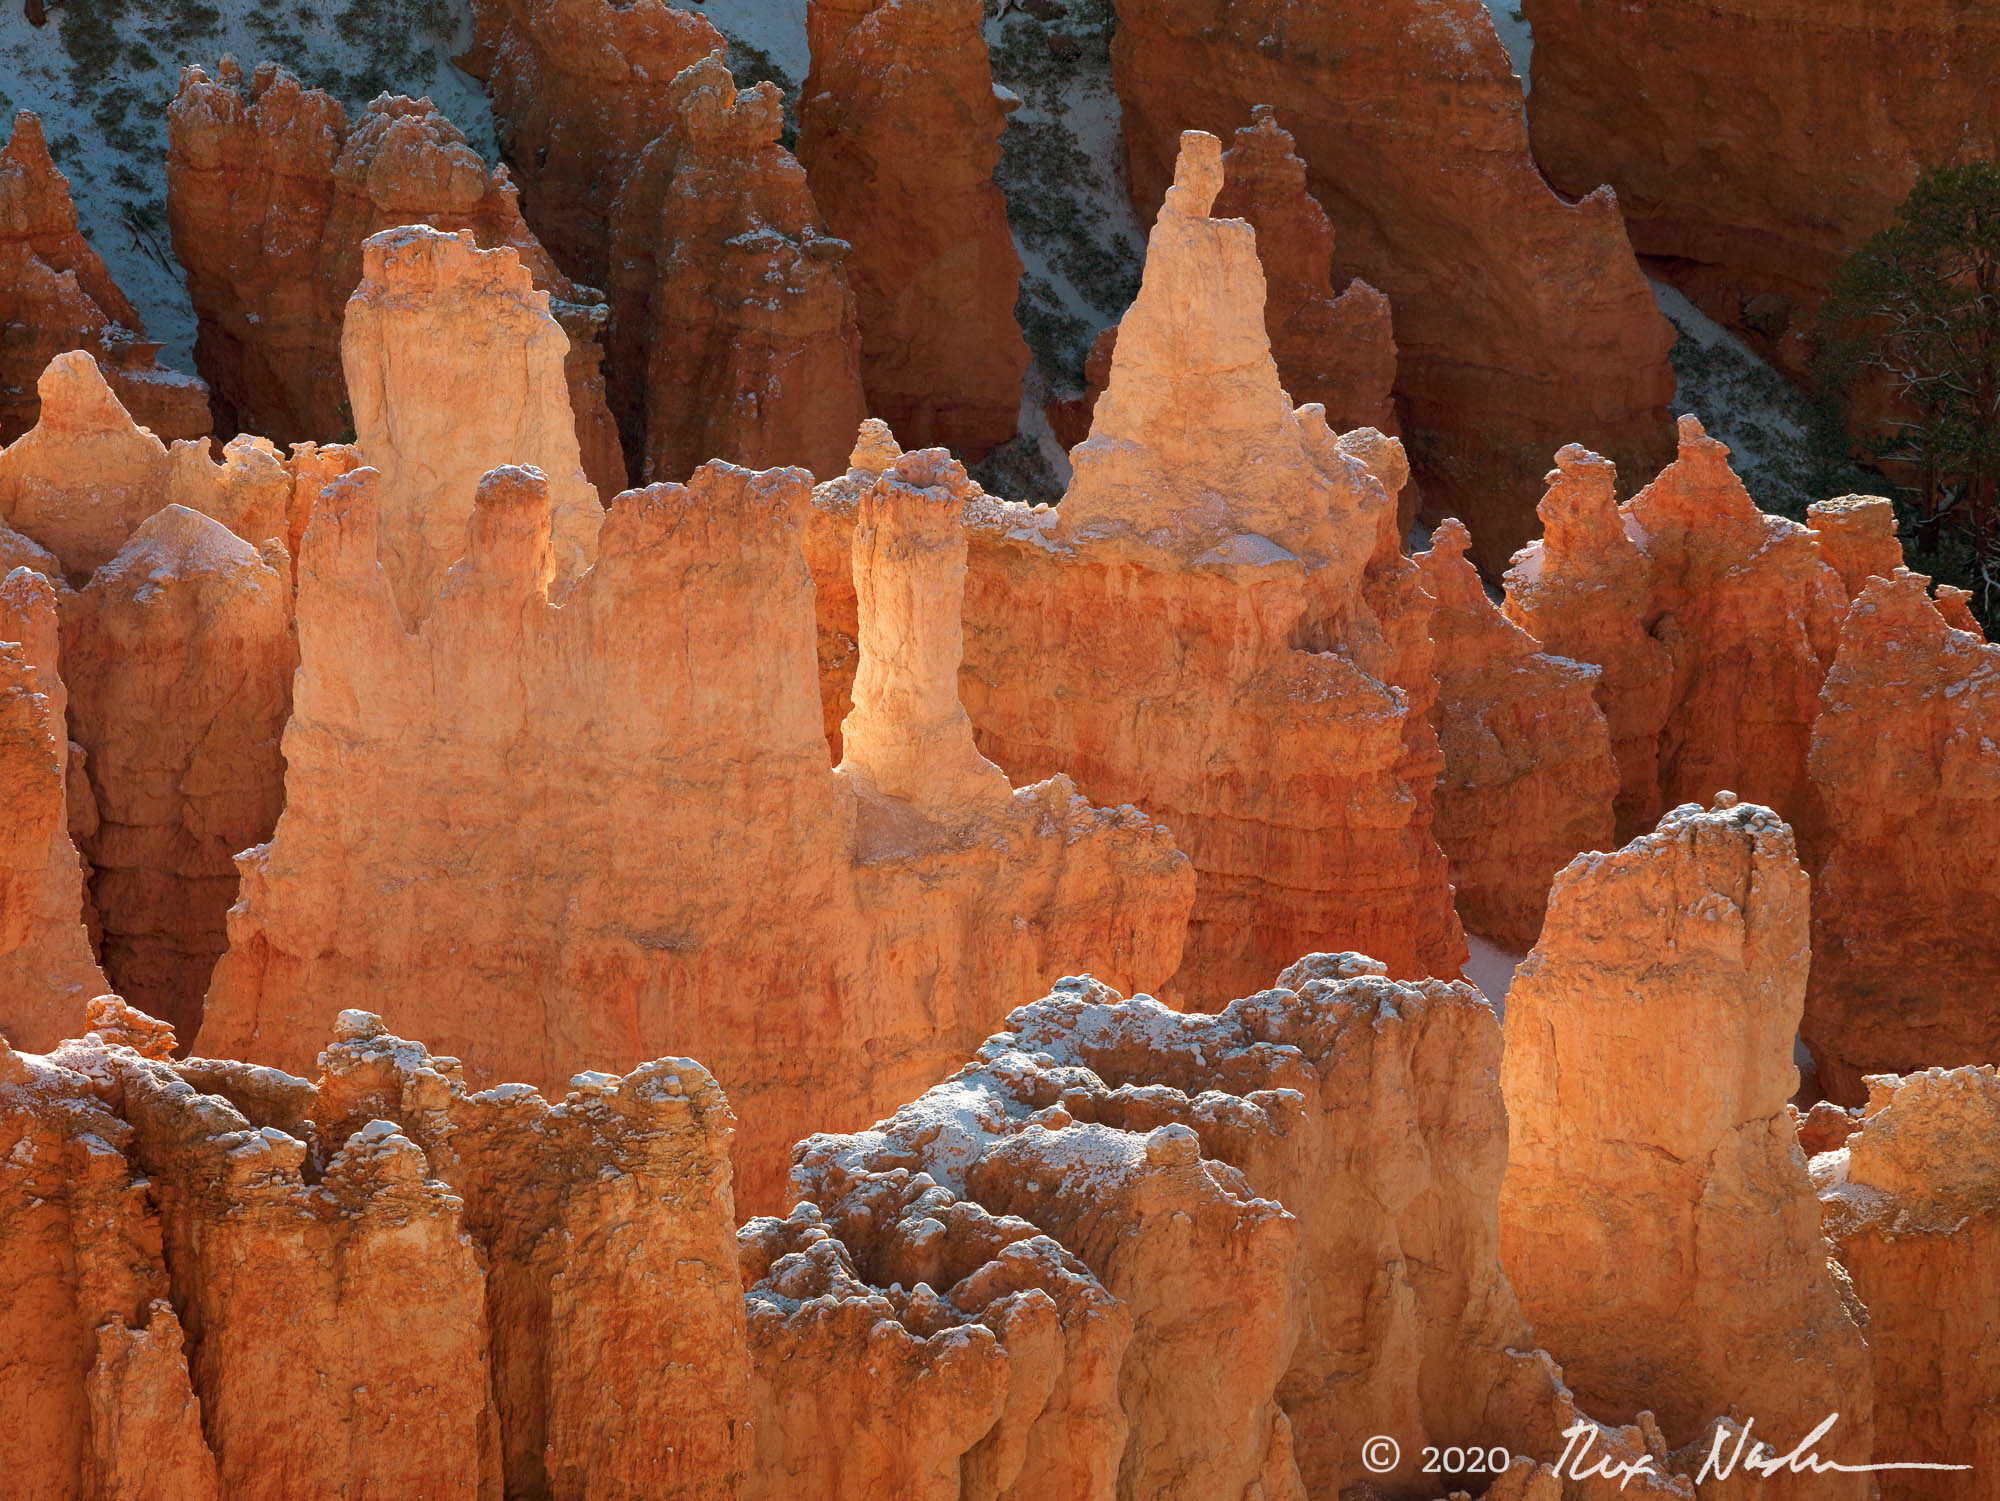 Queens Garden - Bryce Canyon